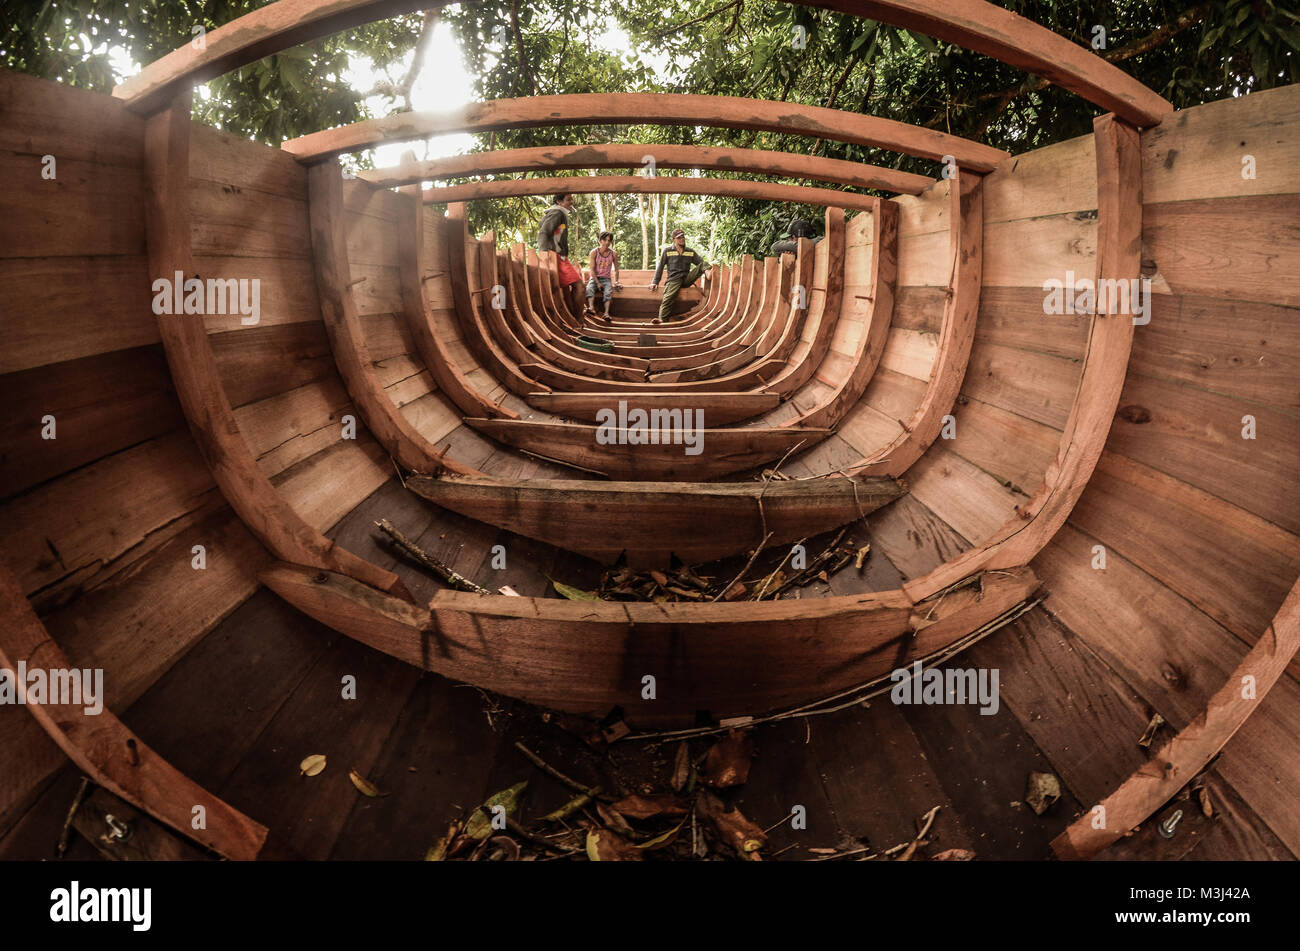 The traditional Sulawesi wooden fishing boat are being made by local fishermen. - Stock Image